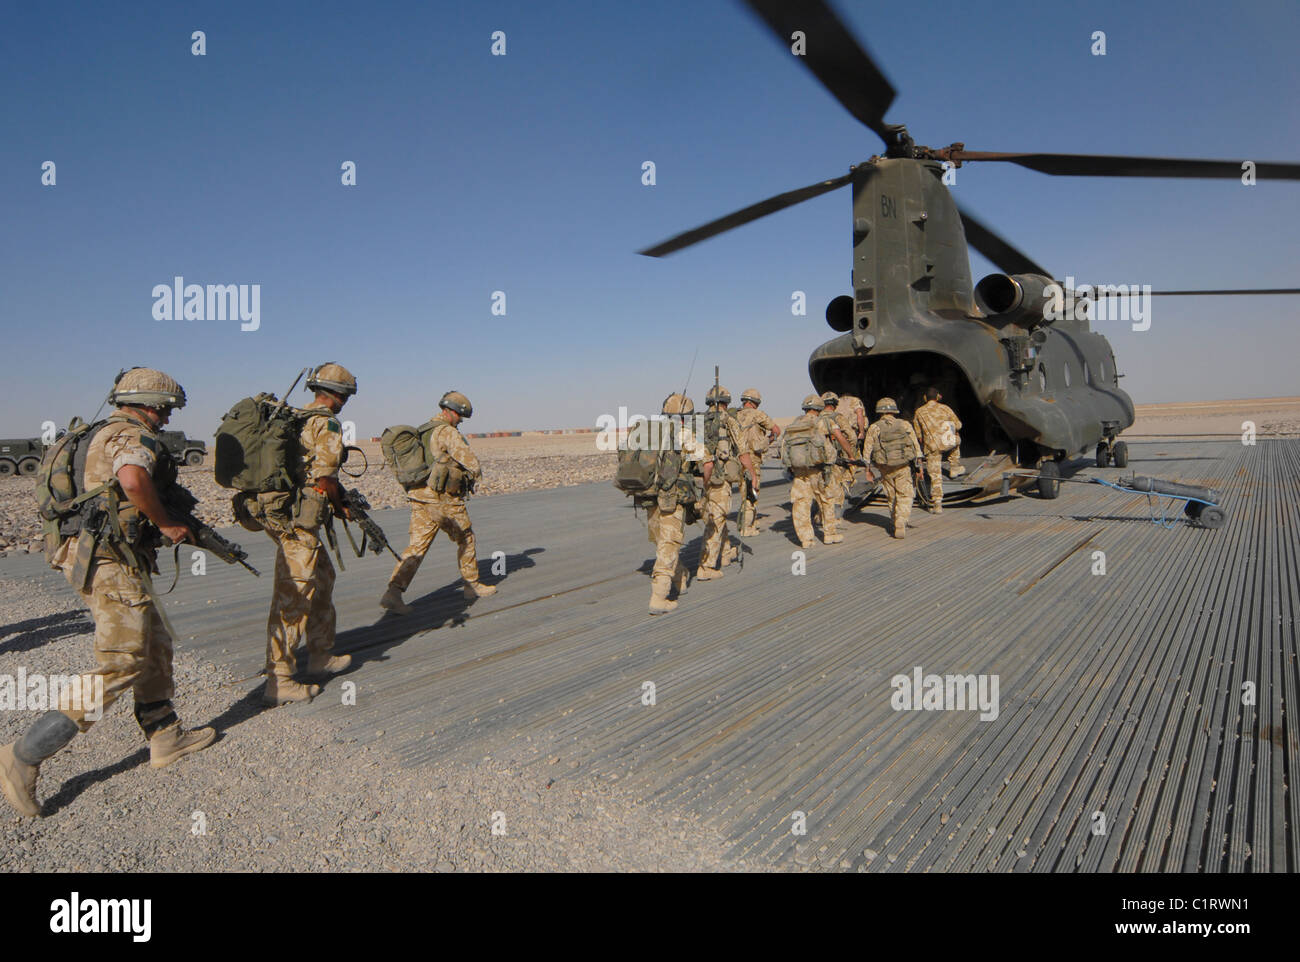 British paratroopers boarding a CH-47 Chinook helicopter at Camp Bastion, Afghanistan. - Stock Image